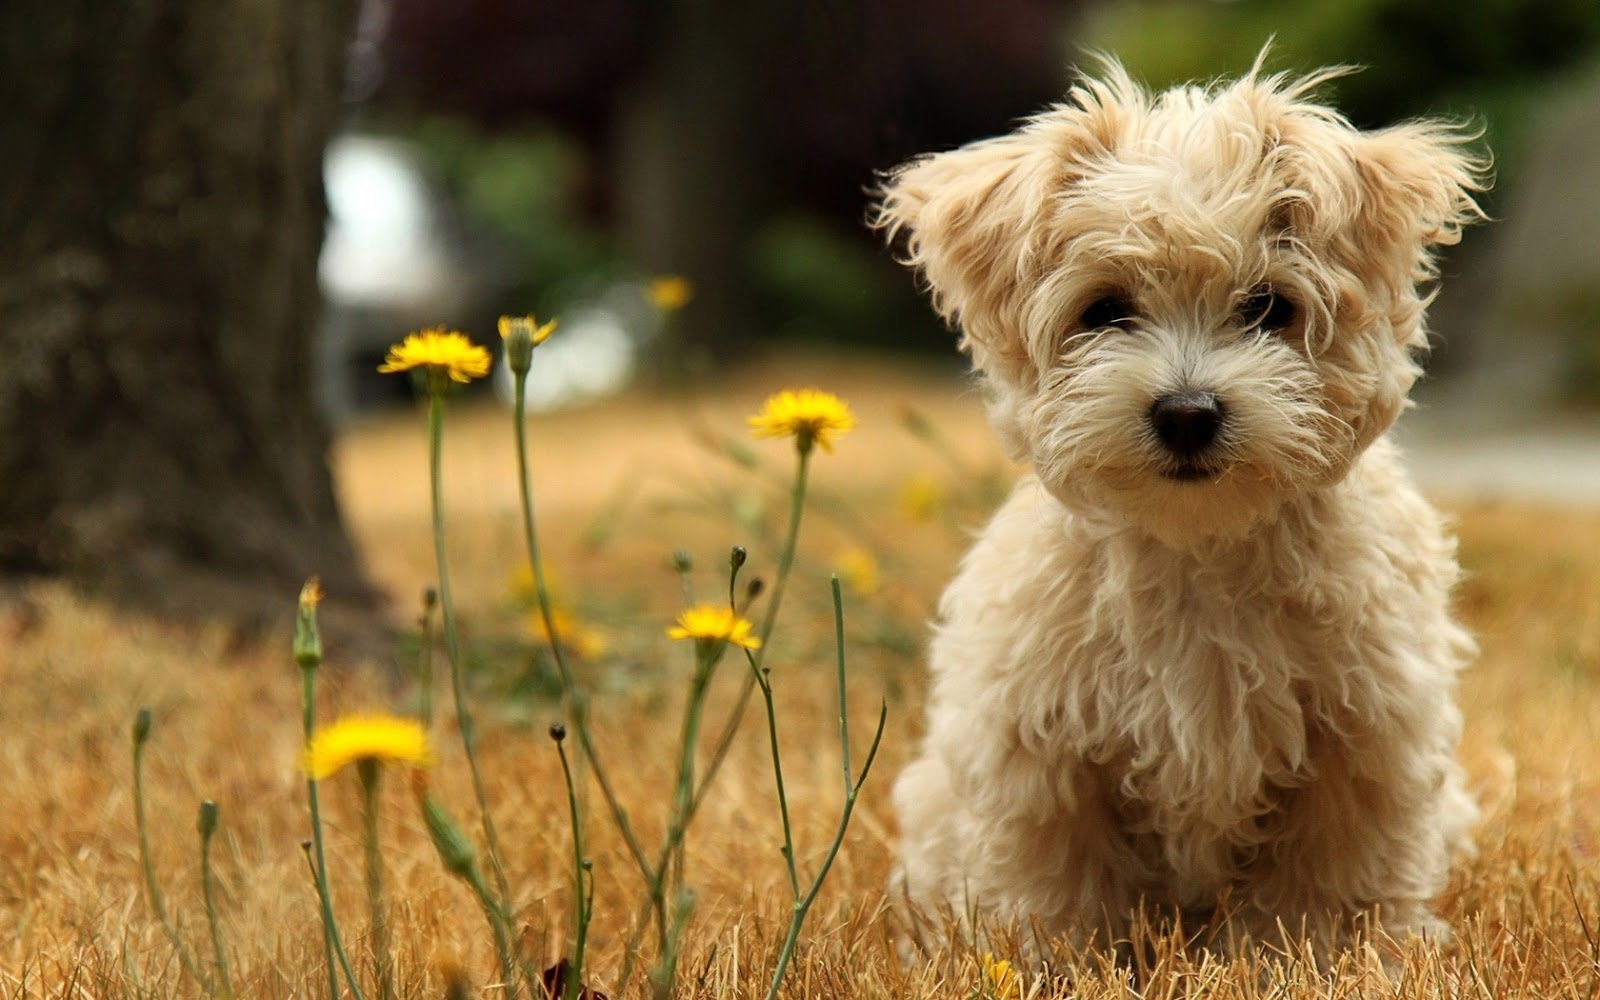 hd photography wallpapers : cute puppies hd wallpapers